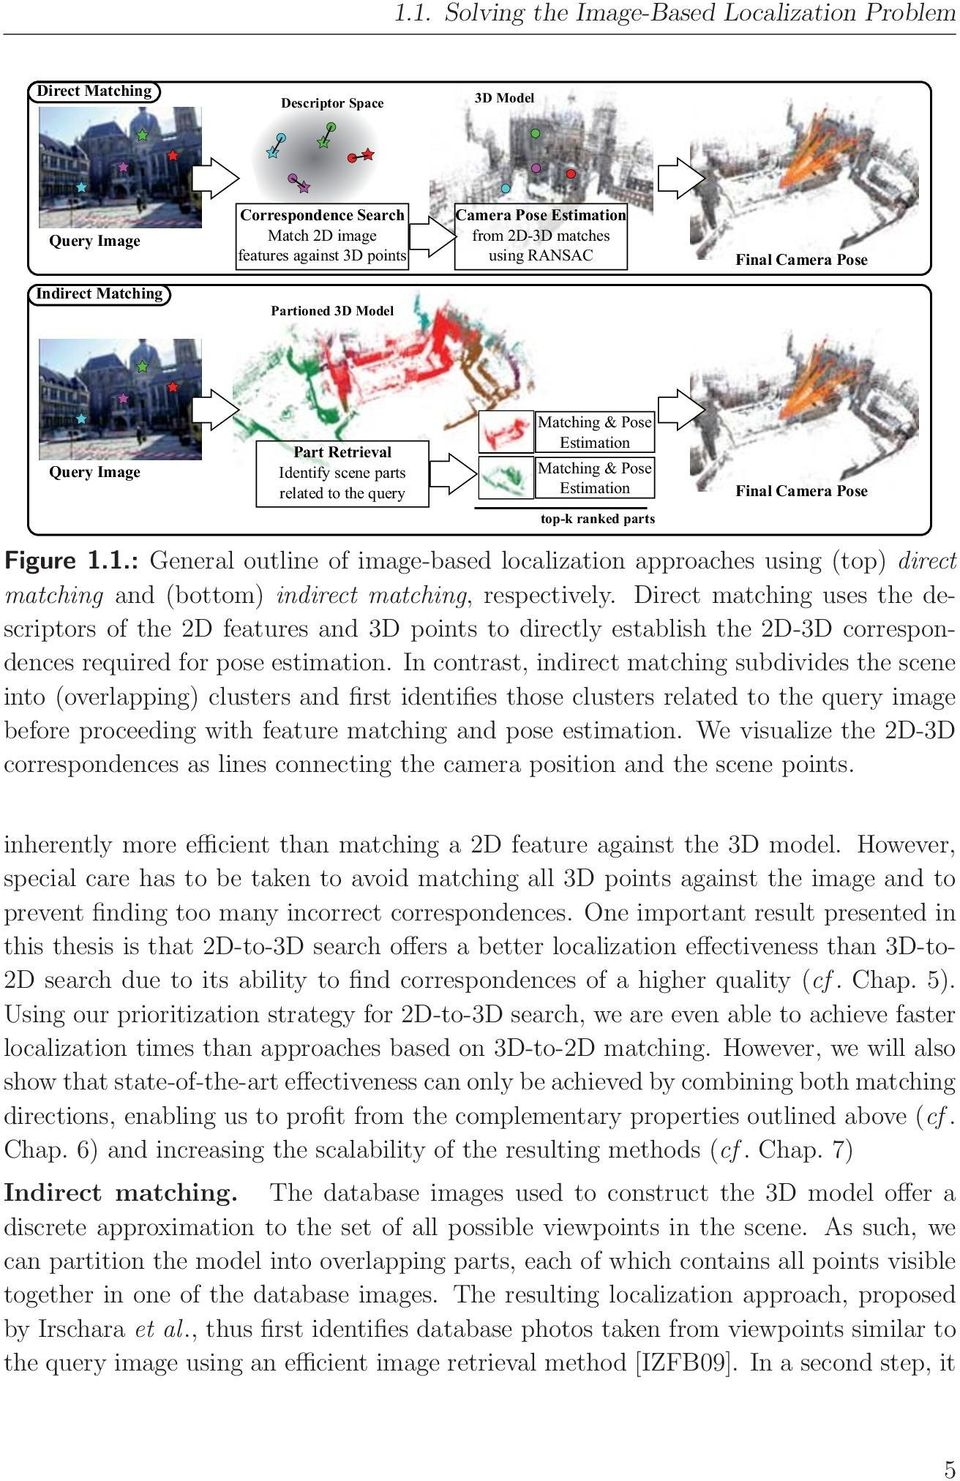 In contrast, indirect matching subdivides the scene into (overlapping) clusters and first identifies those clusters related to the query image before proceeding with feature matching and pose